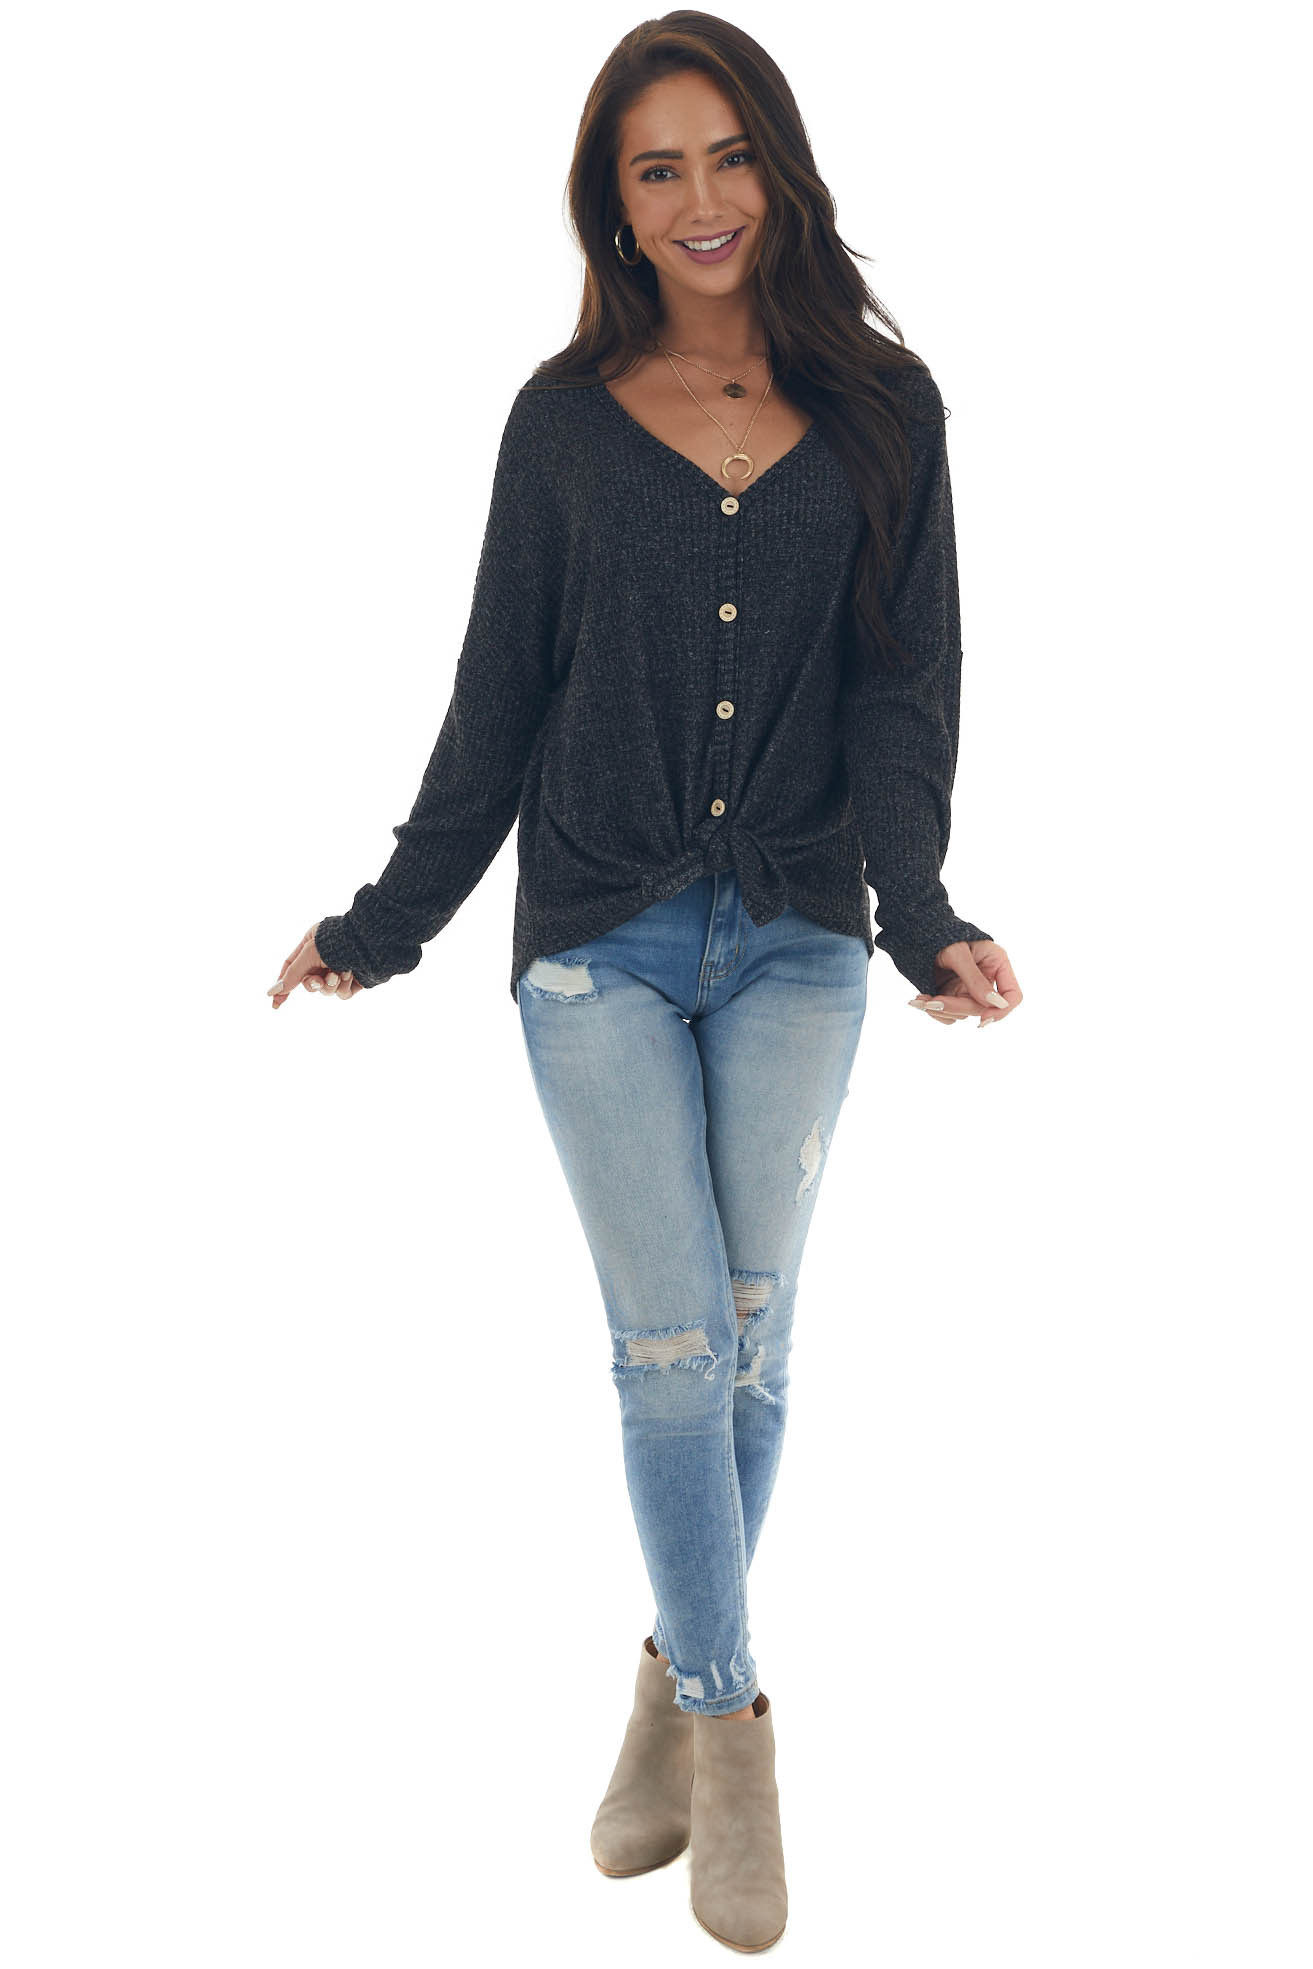 Heathered Black Long Sleeve V Neck Button Top